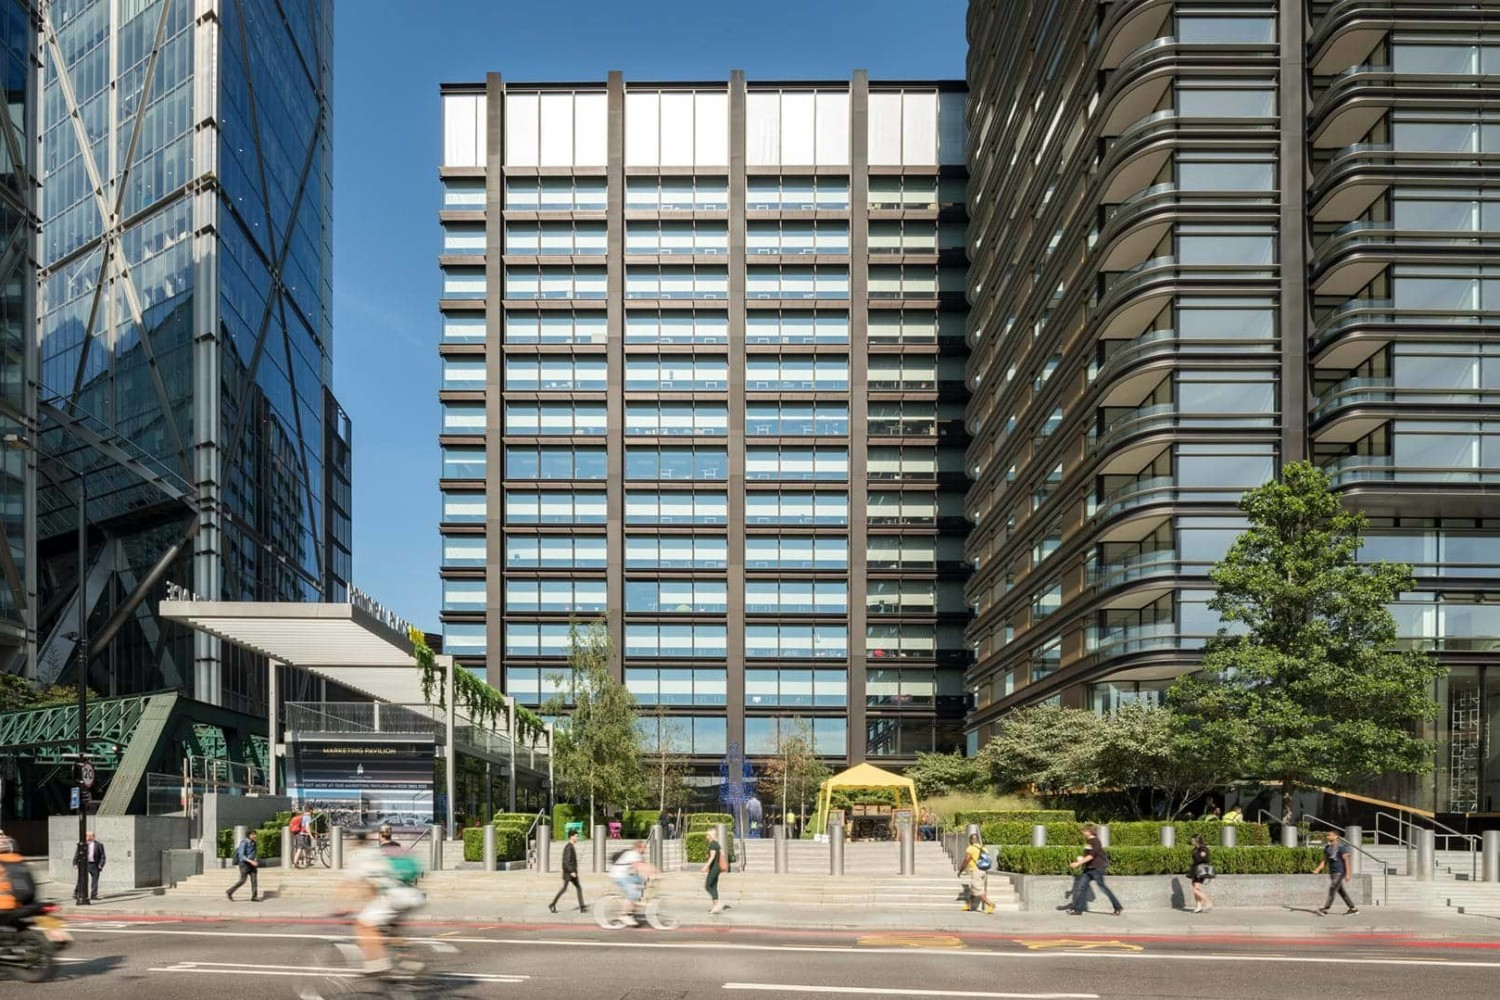 The completion of Foster's Principal Tower concludes Principal Place masterplan